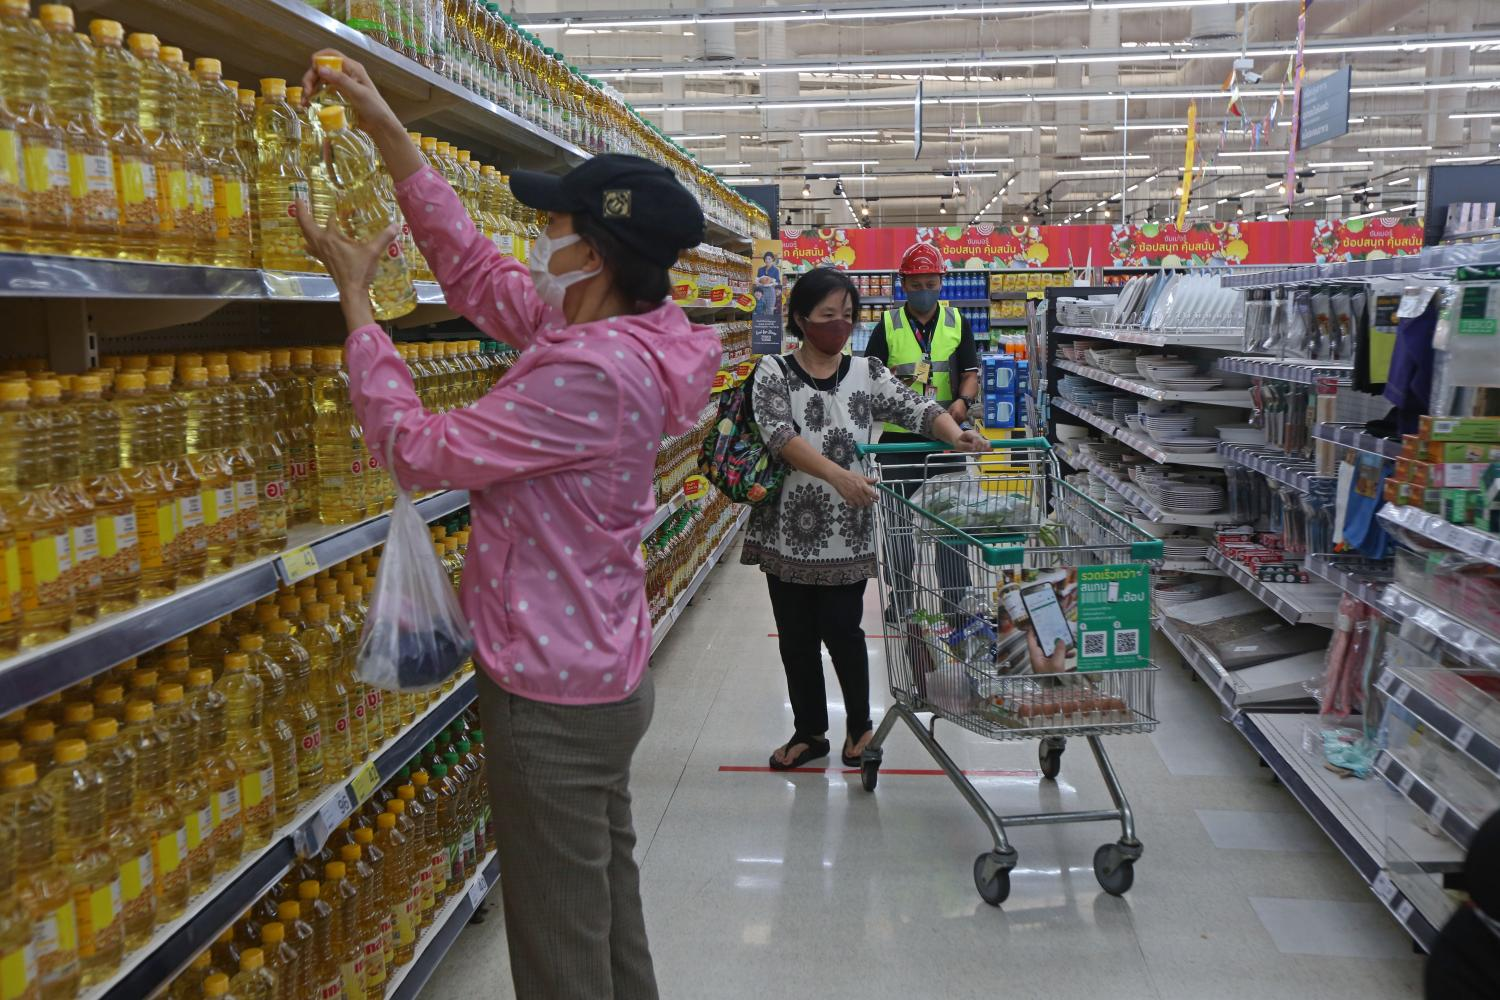 Consumers browse goods at a Tesco Lotus hypermarket. Varuth Hirunyatheb